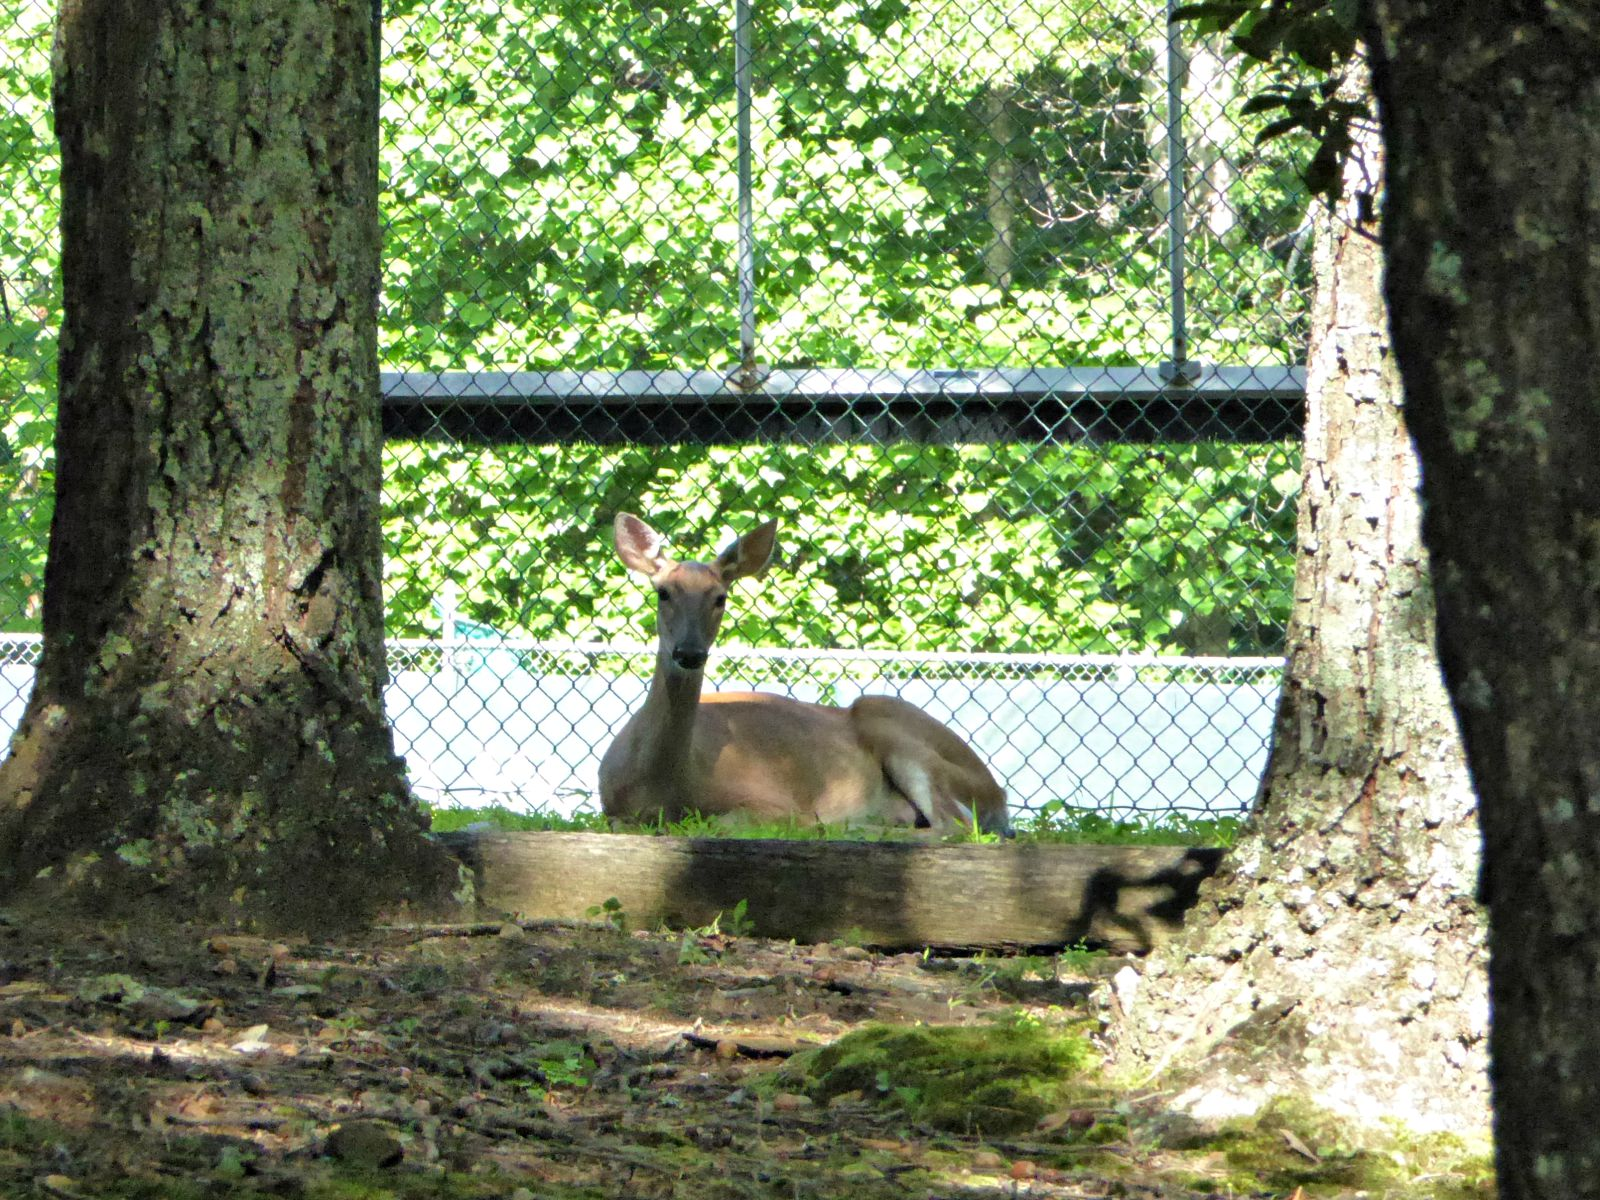 July 10, 2015 - doe by Bent Tree Tennis courts